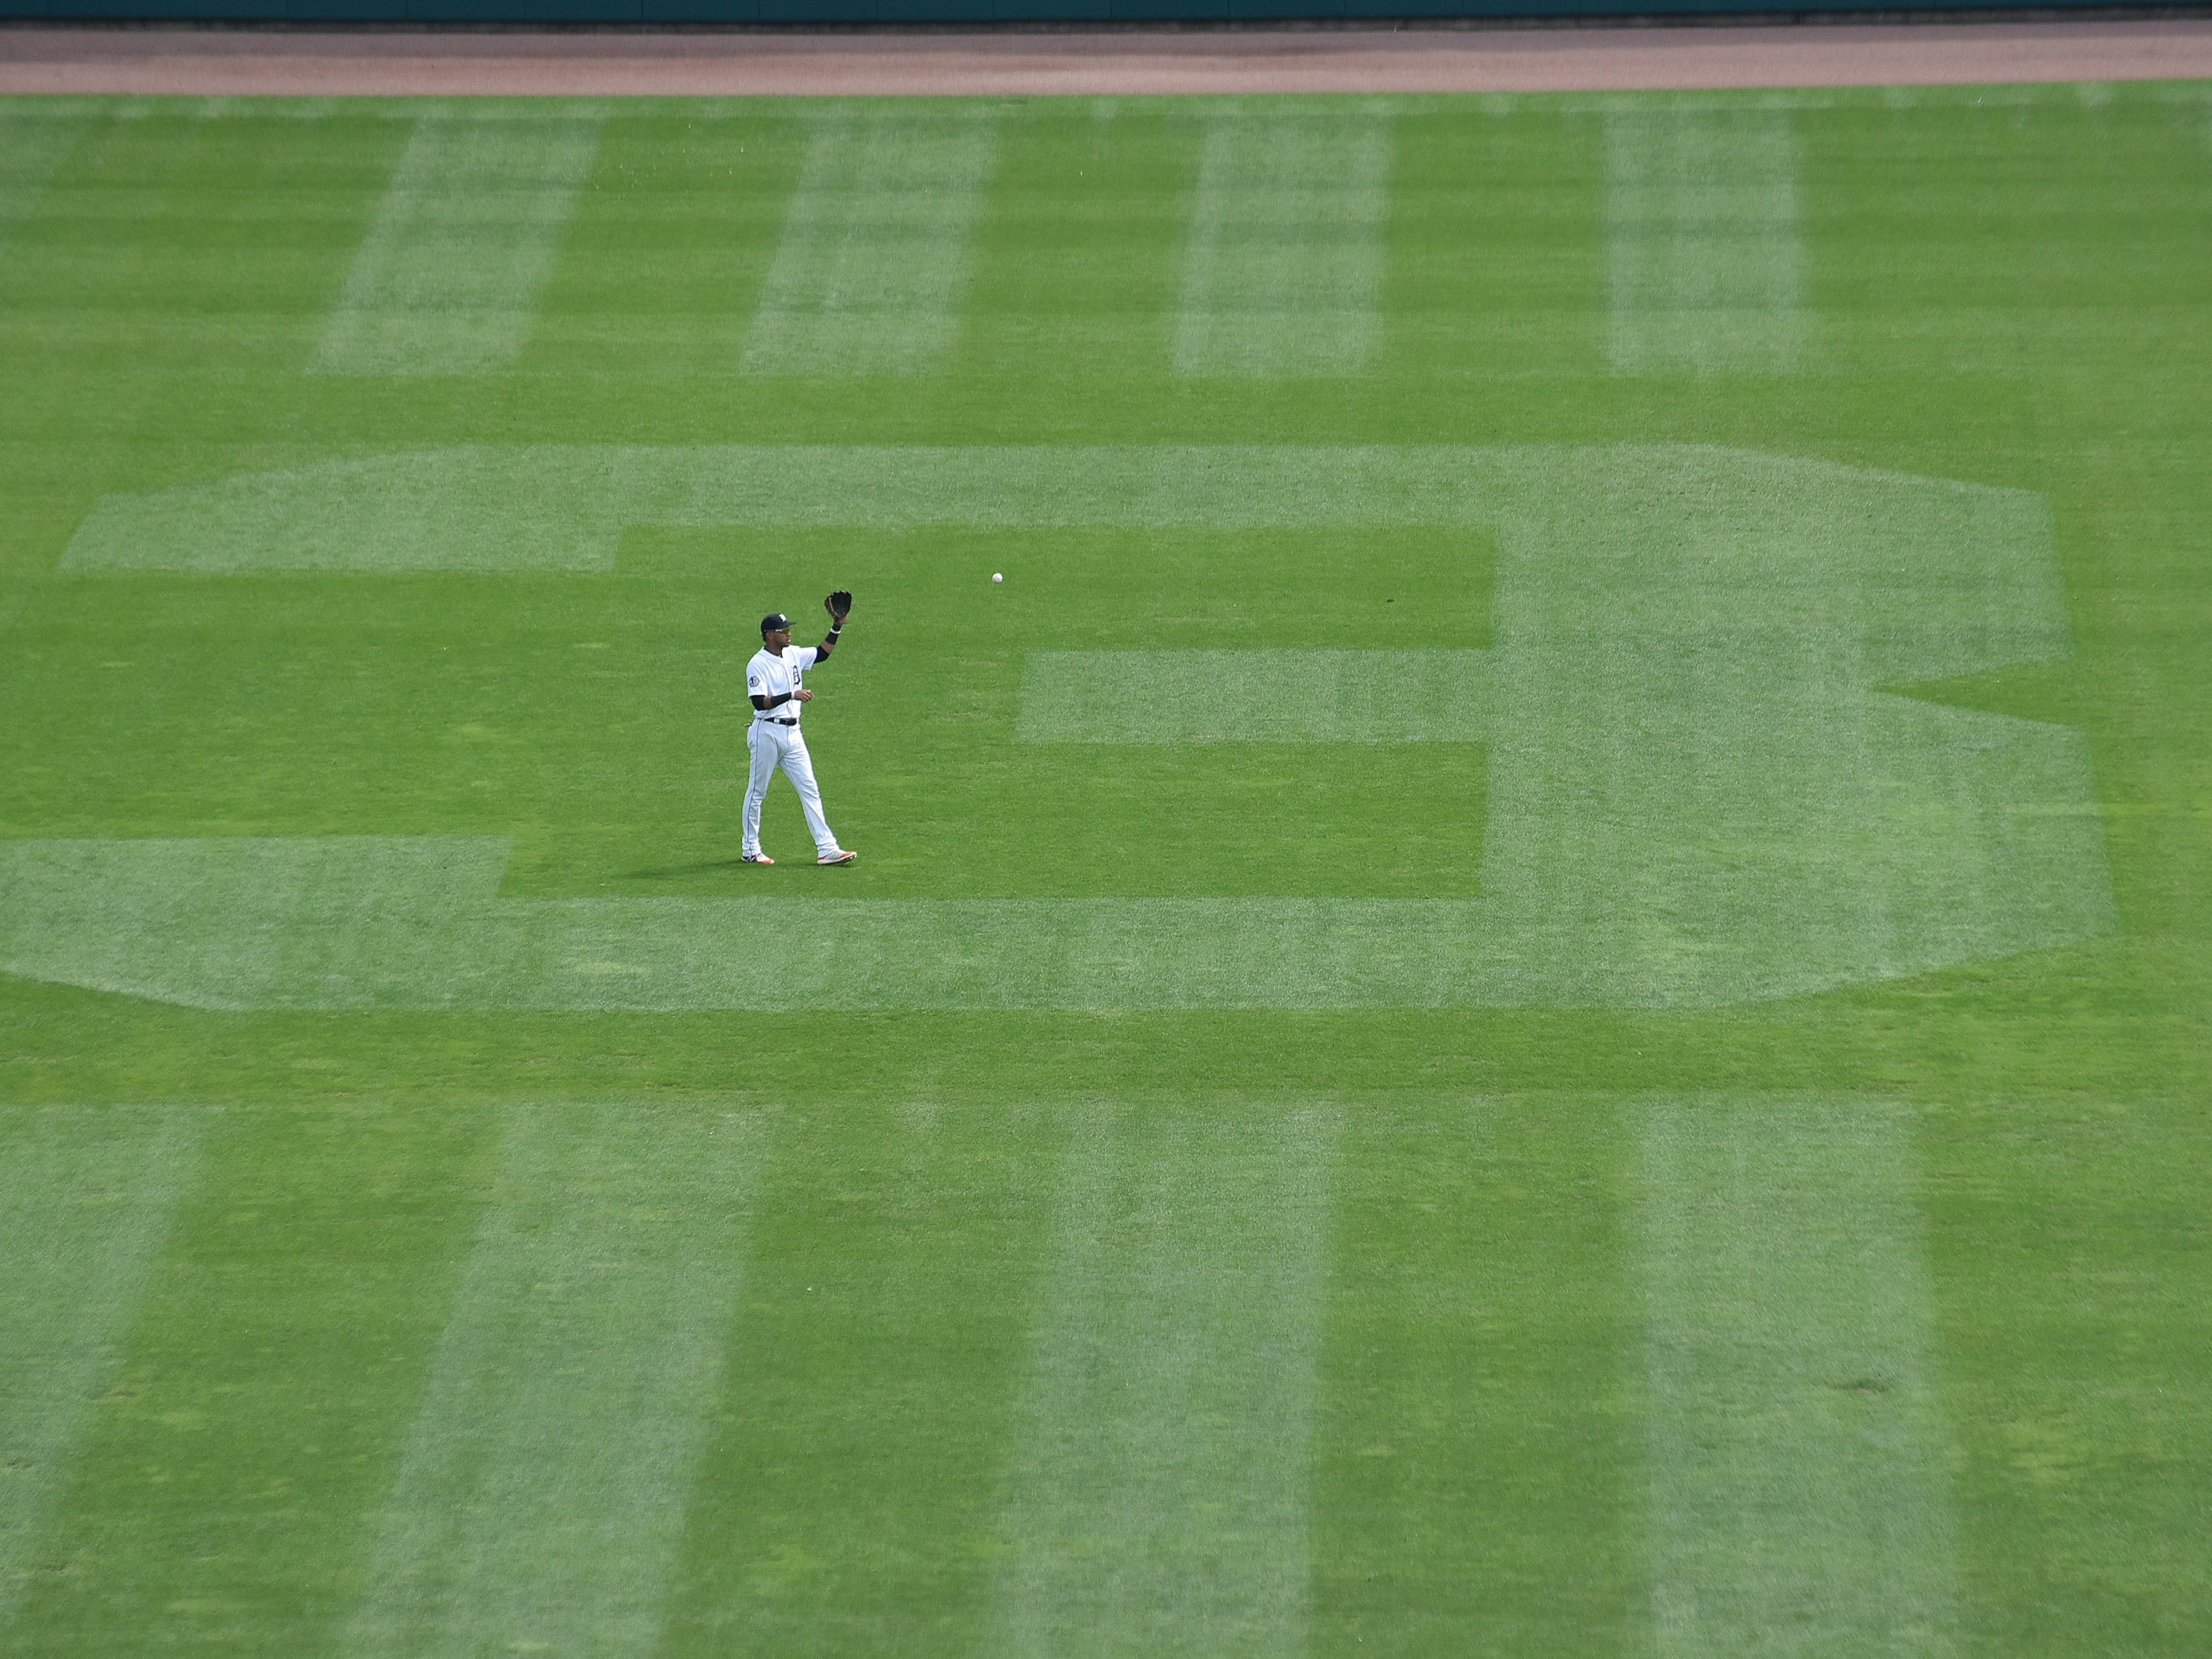 Tigers center fielder Victor Reyes warms up before the fifth inning. A 3 was cut into center field to honor former Tigers shortstop Alan Trammell whose number is being retired.